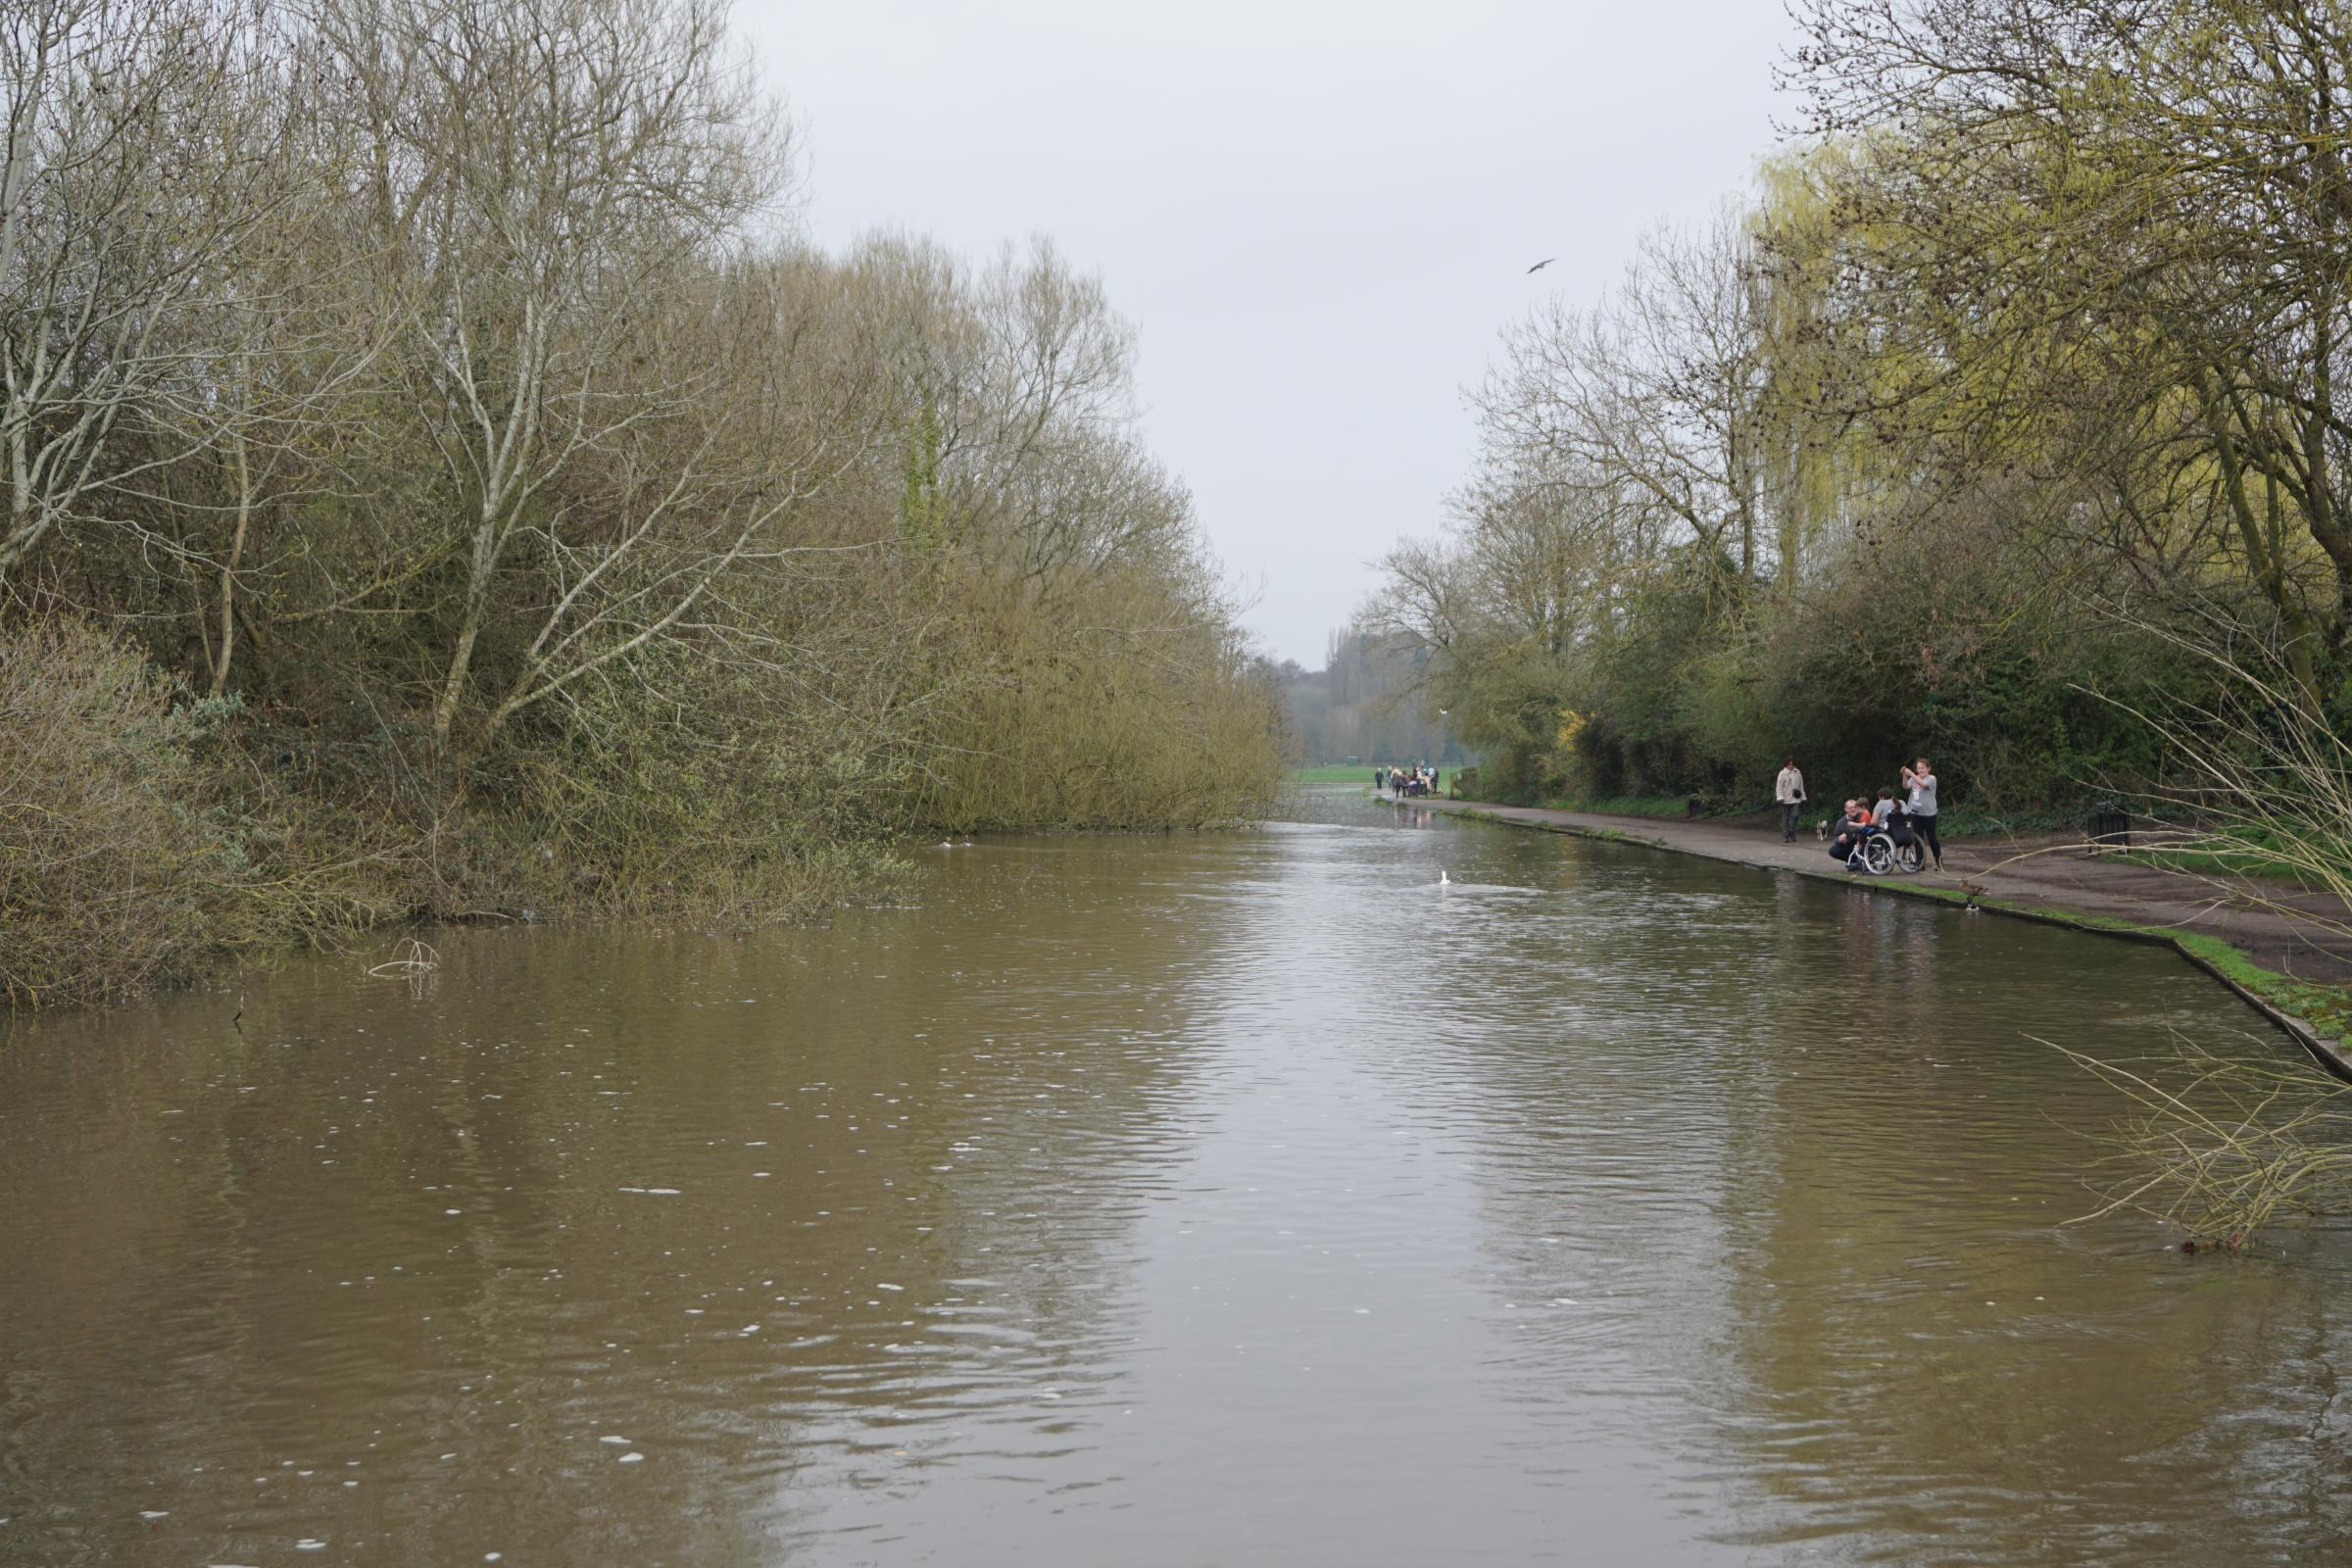 An investigation has been launched after reports of sewage in the River Itchen